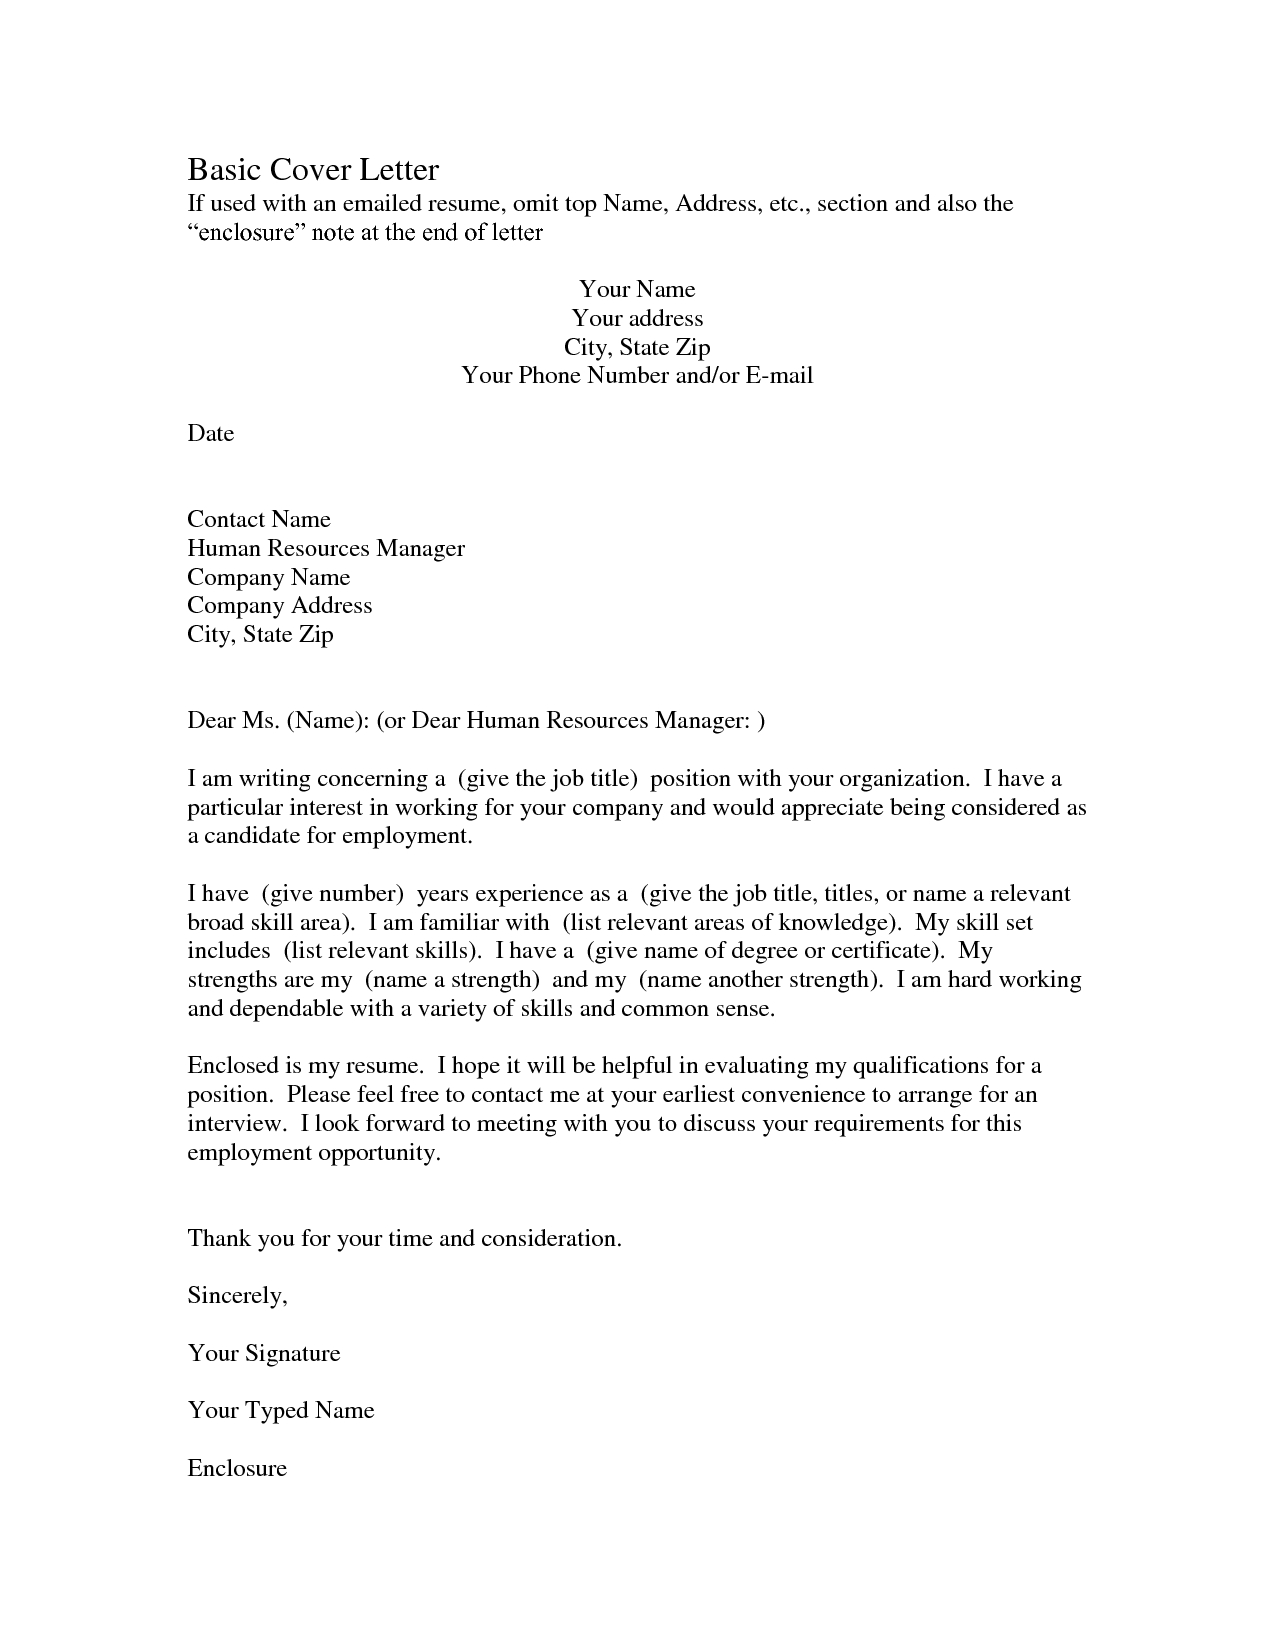 Fillable Cover Letter Template - This Cover Letter Sample Shows How A Resumes for Teachers Can Help